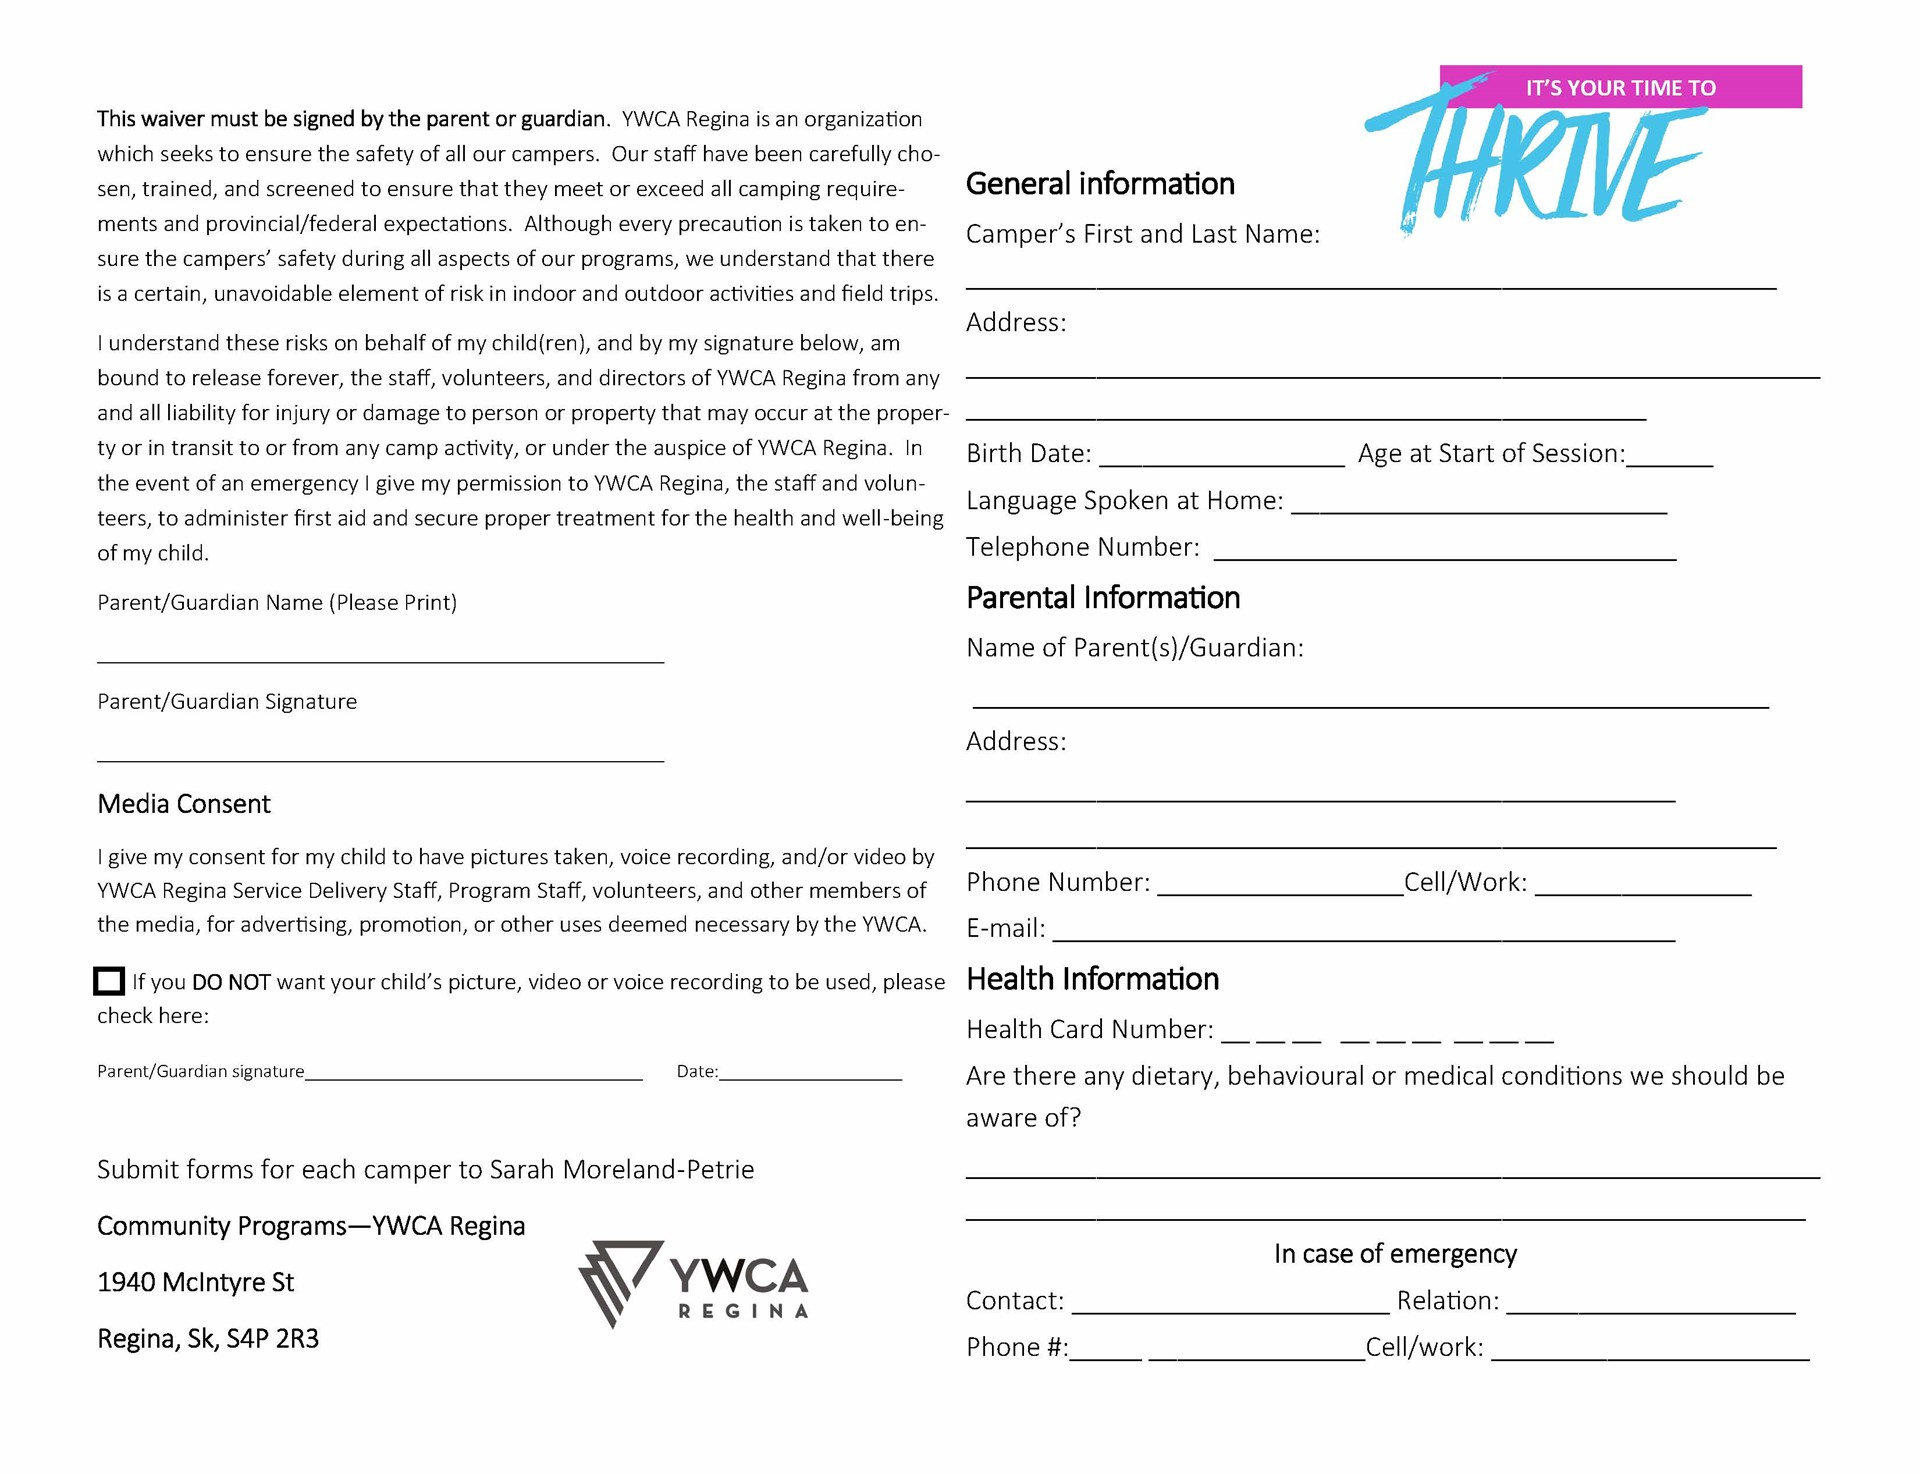 Thrive registration form_Page_1.jpg